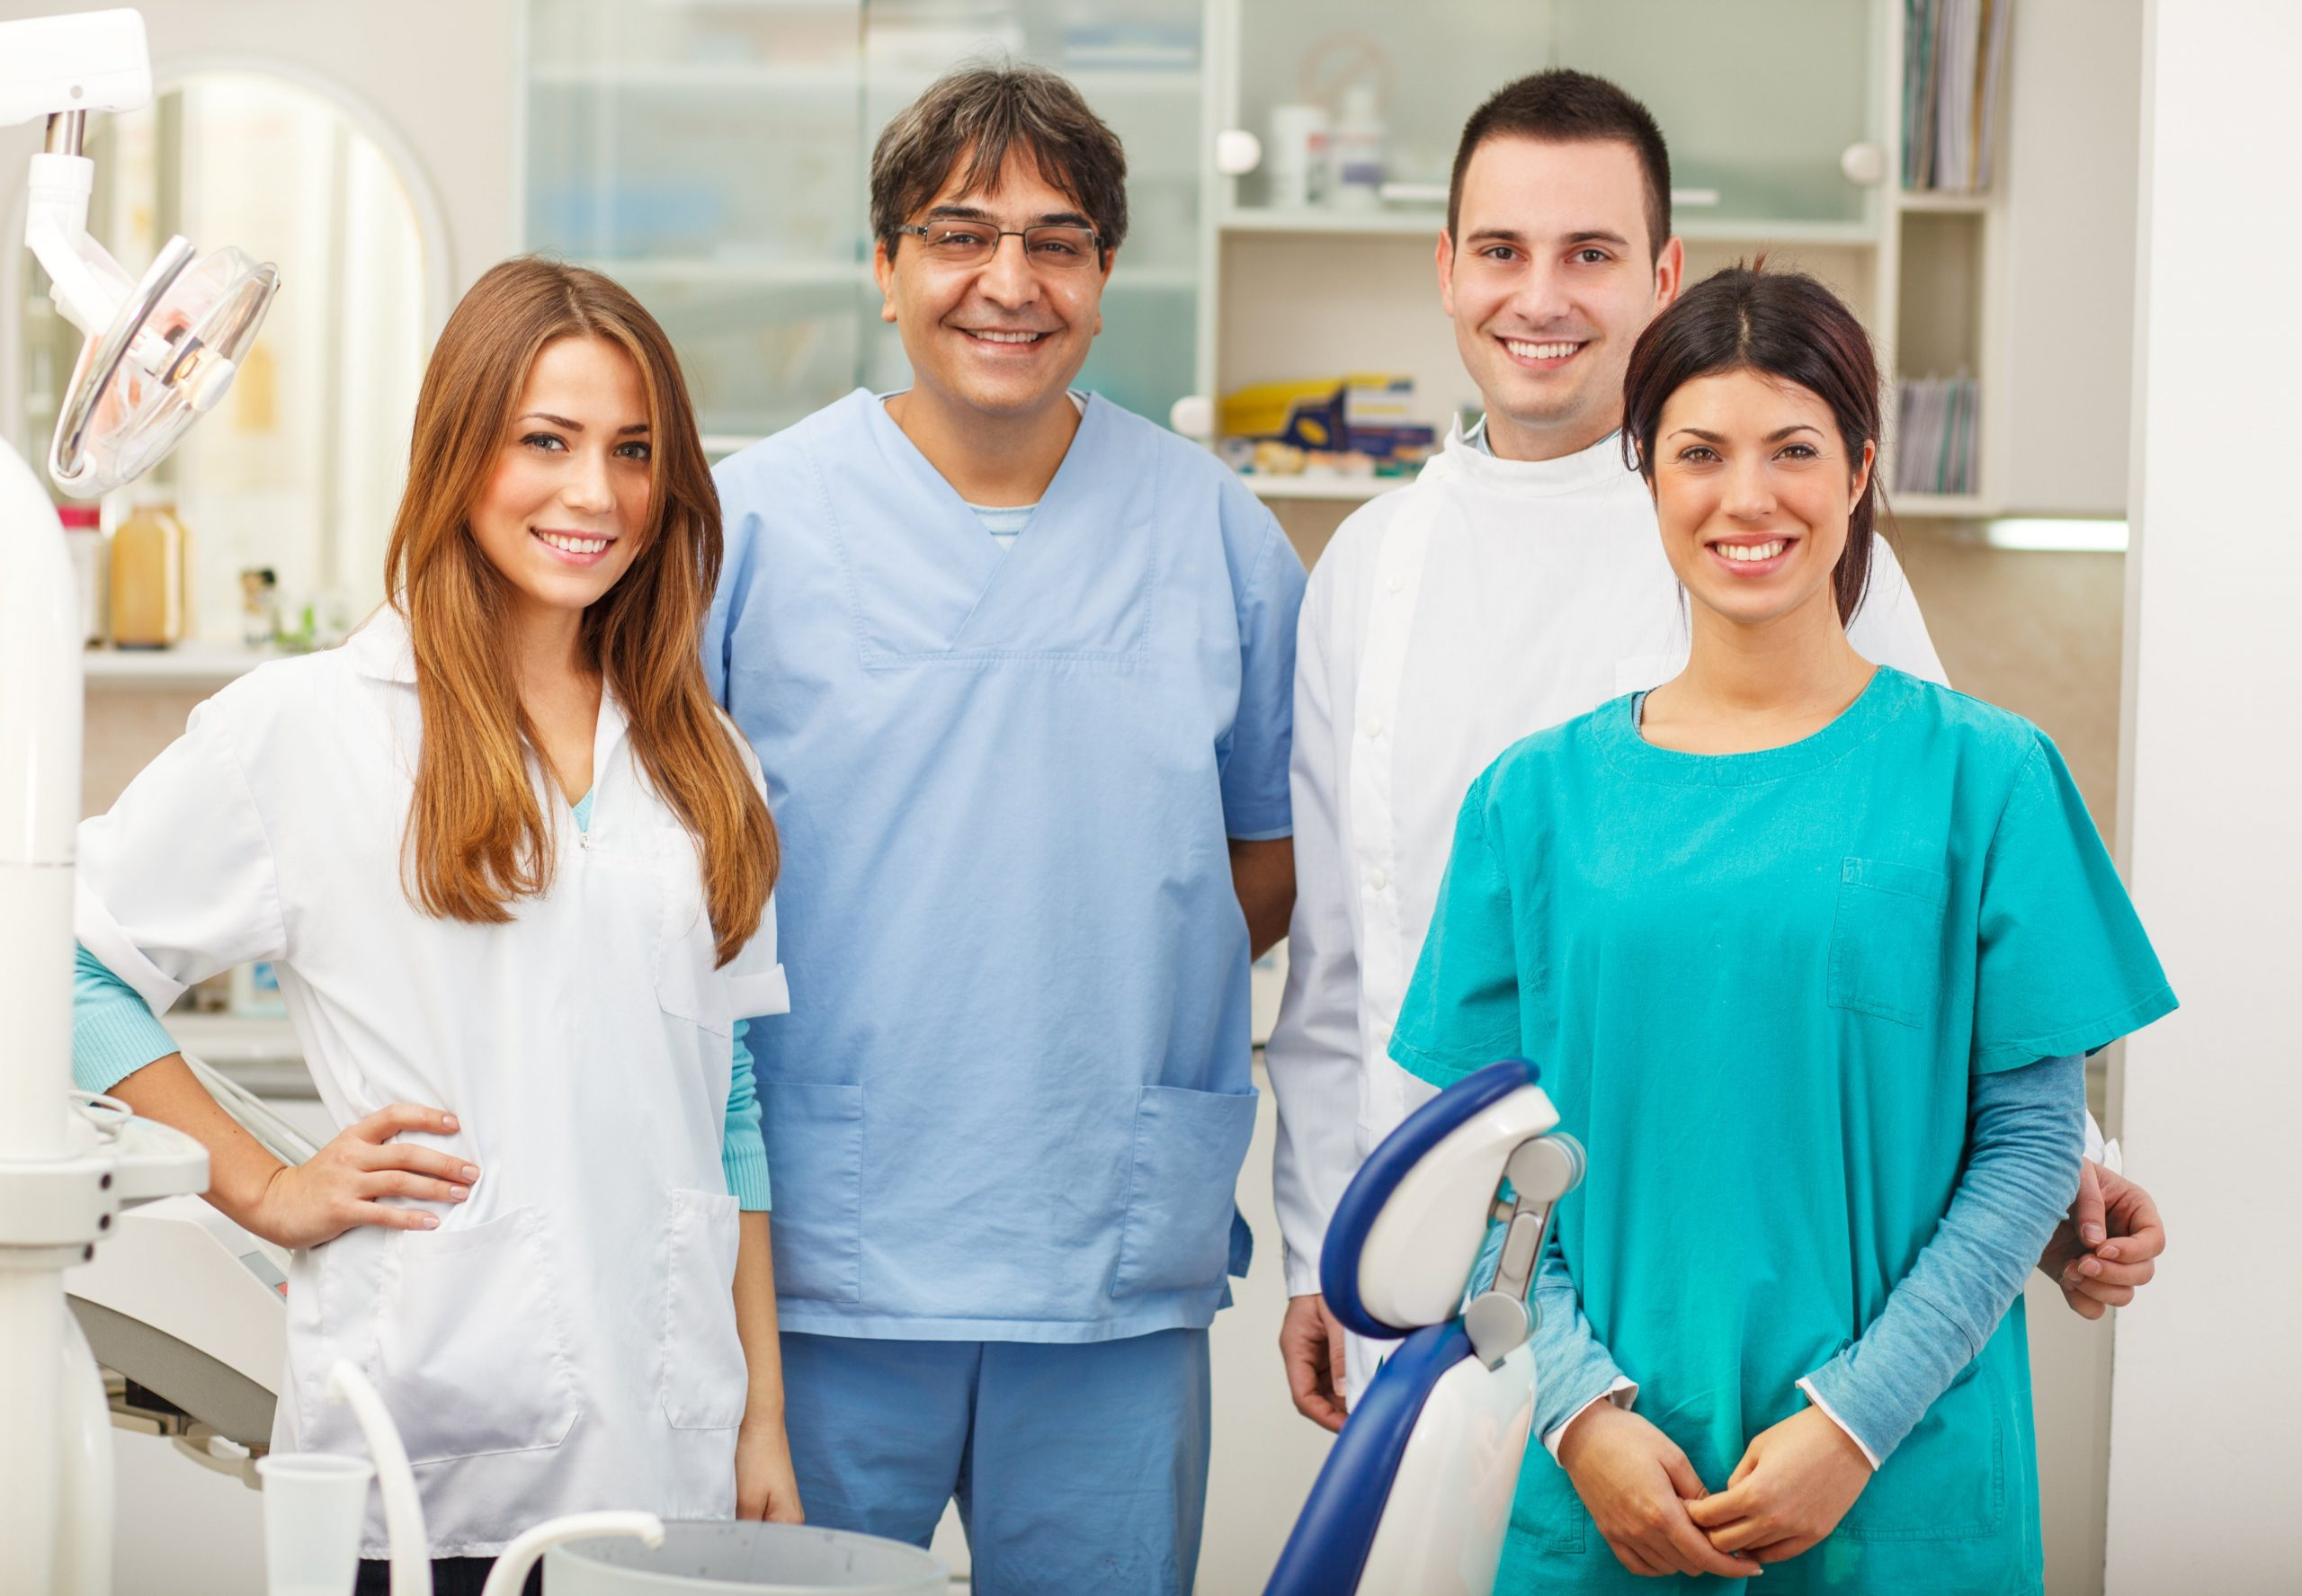 The Benefits of Hiring a Dental Placement Agency